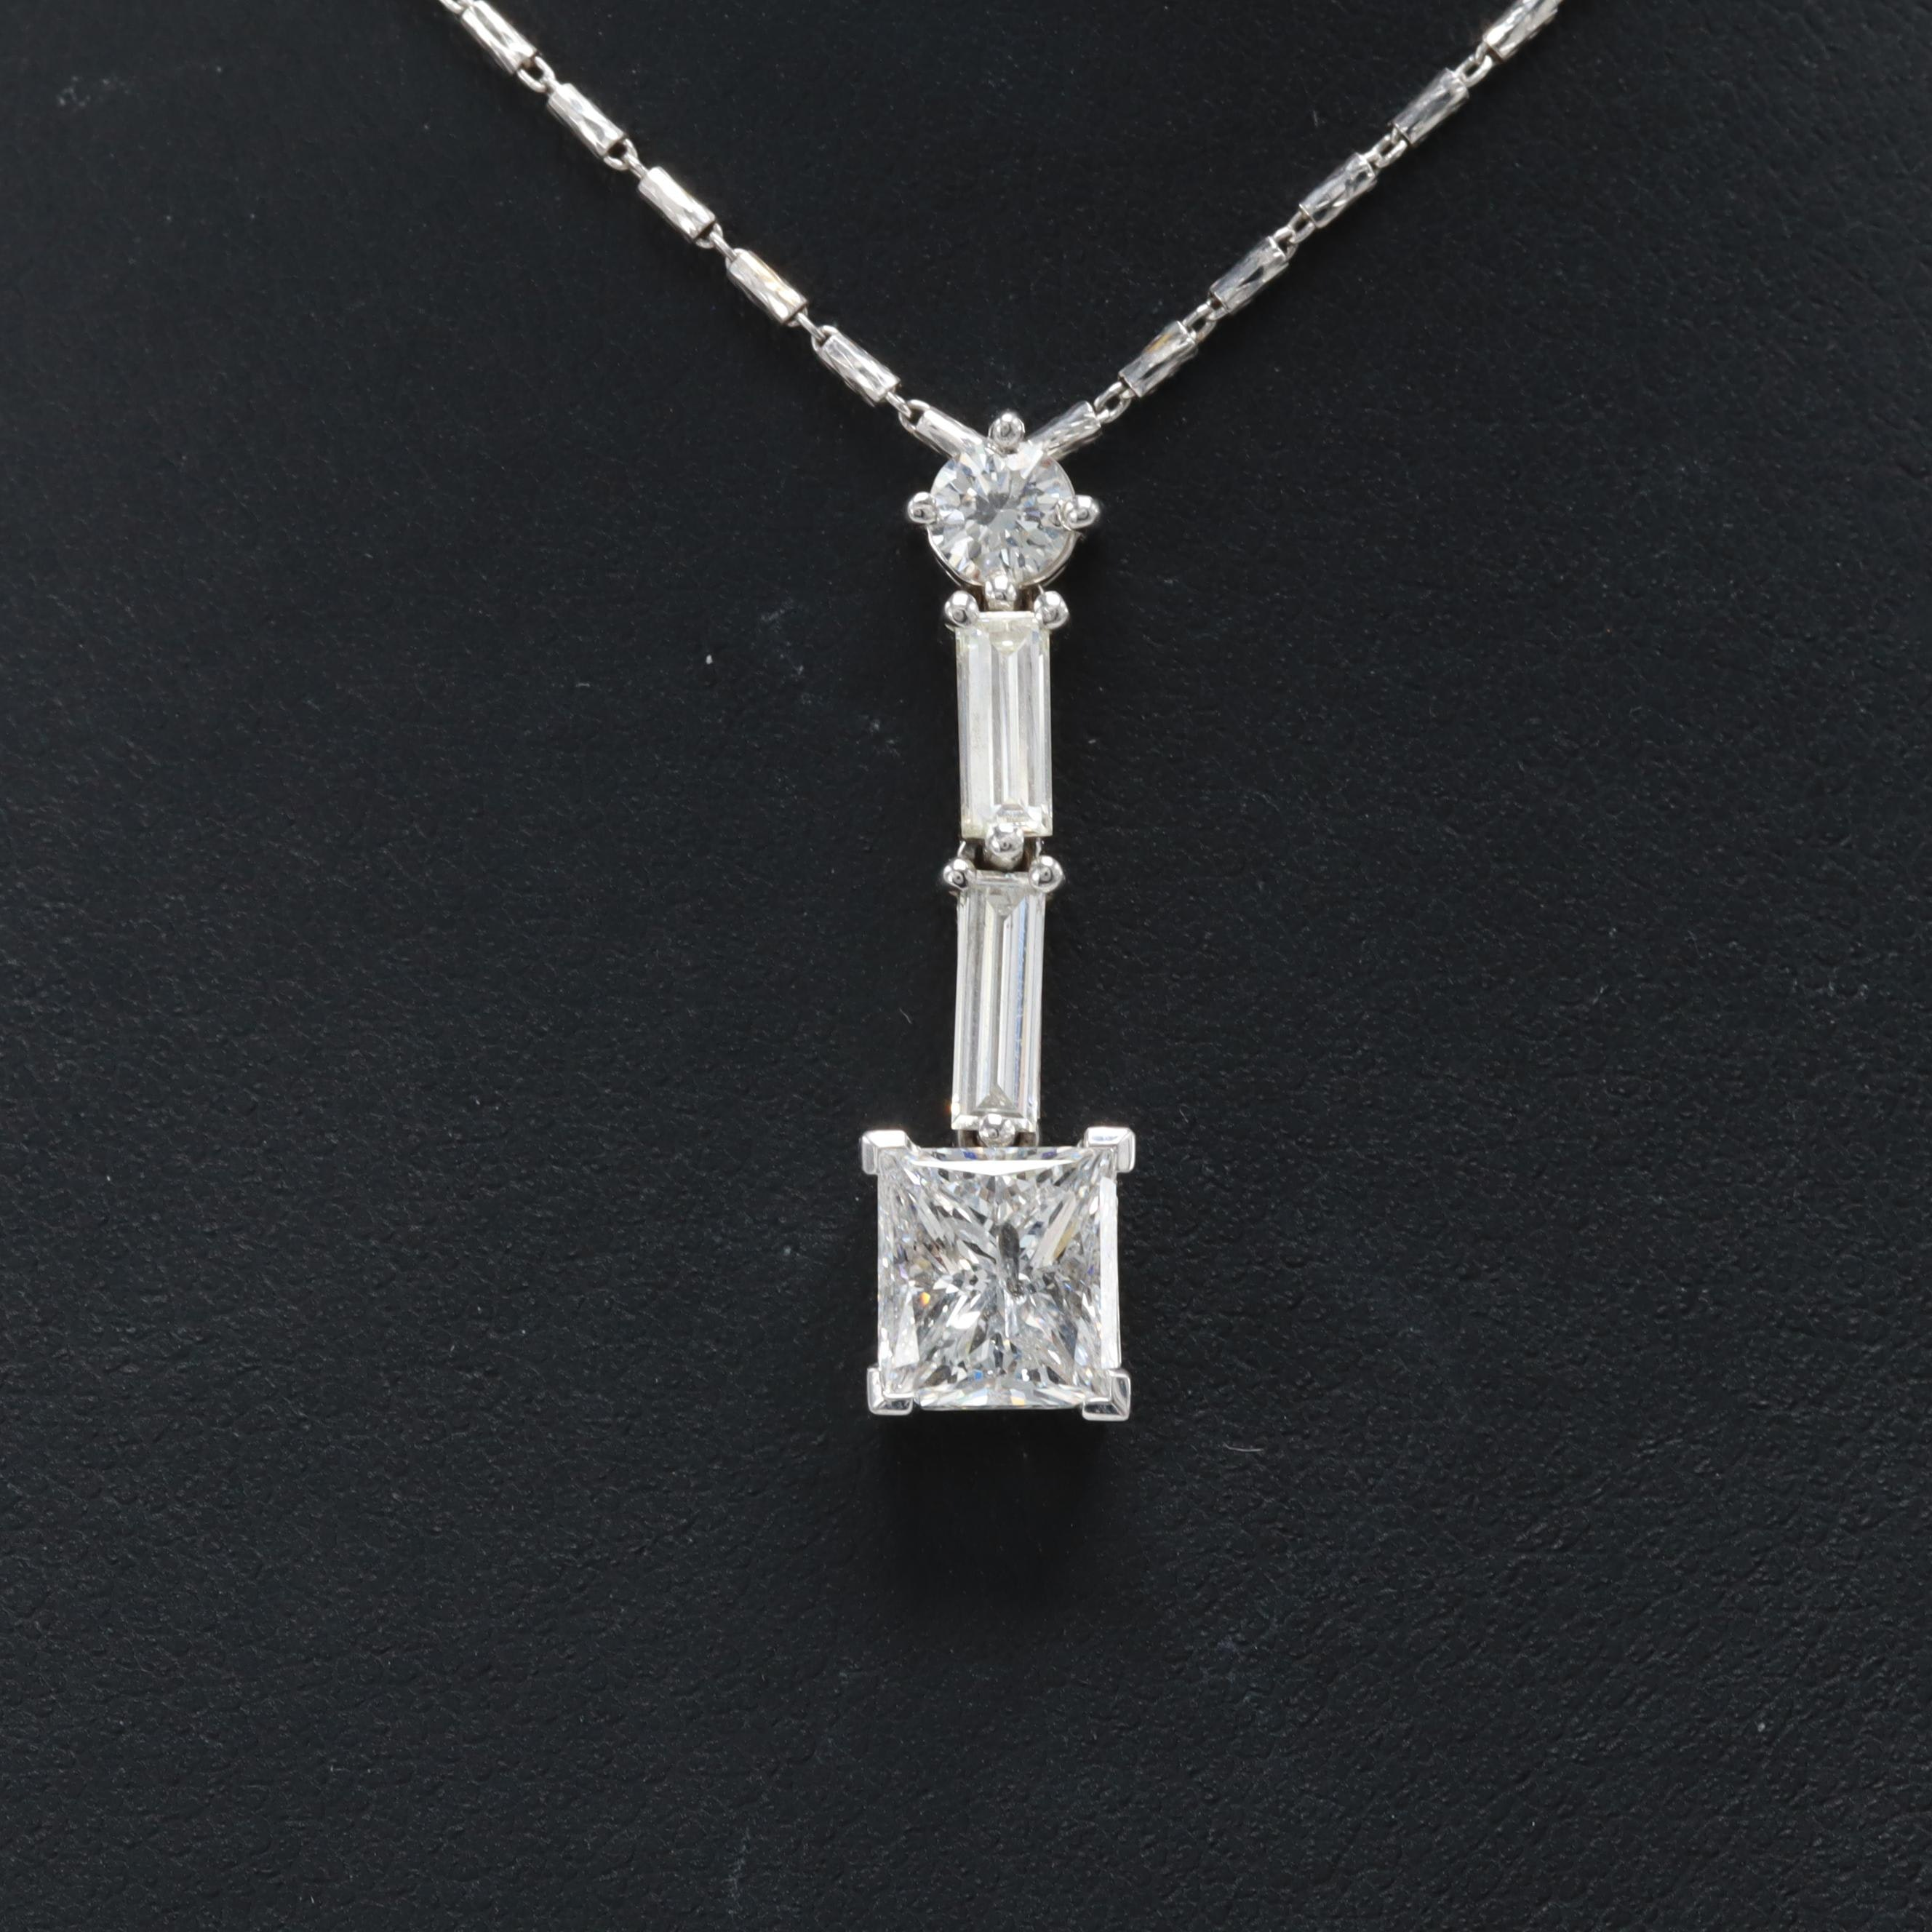 18K and 14K White Gold 2.53 CTW Diamond Necklace